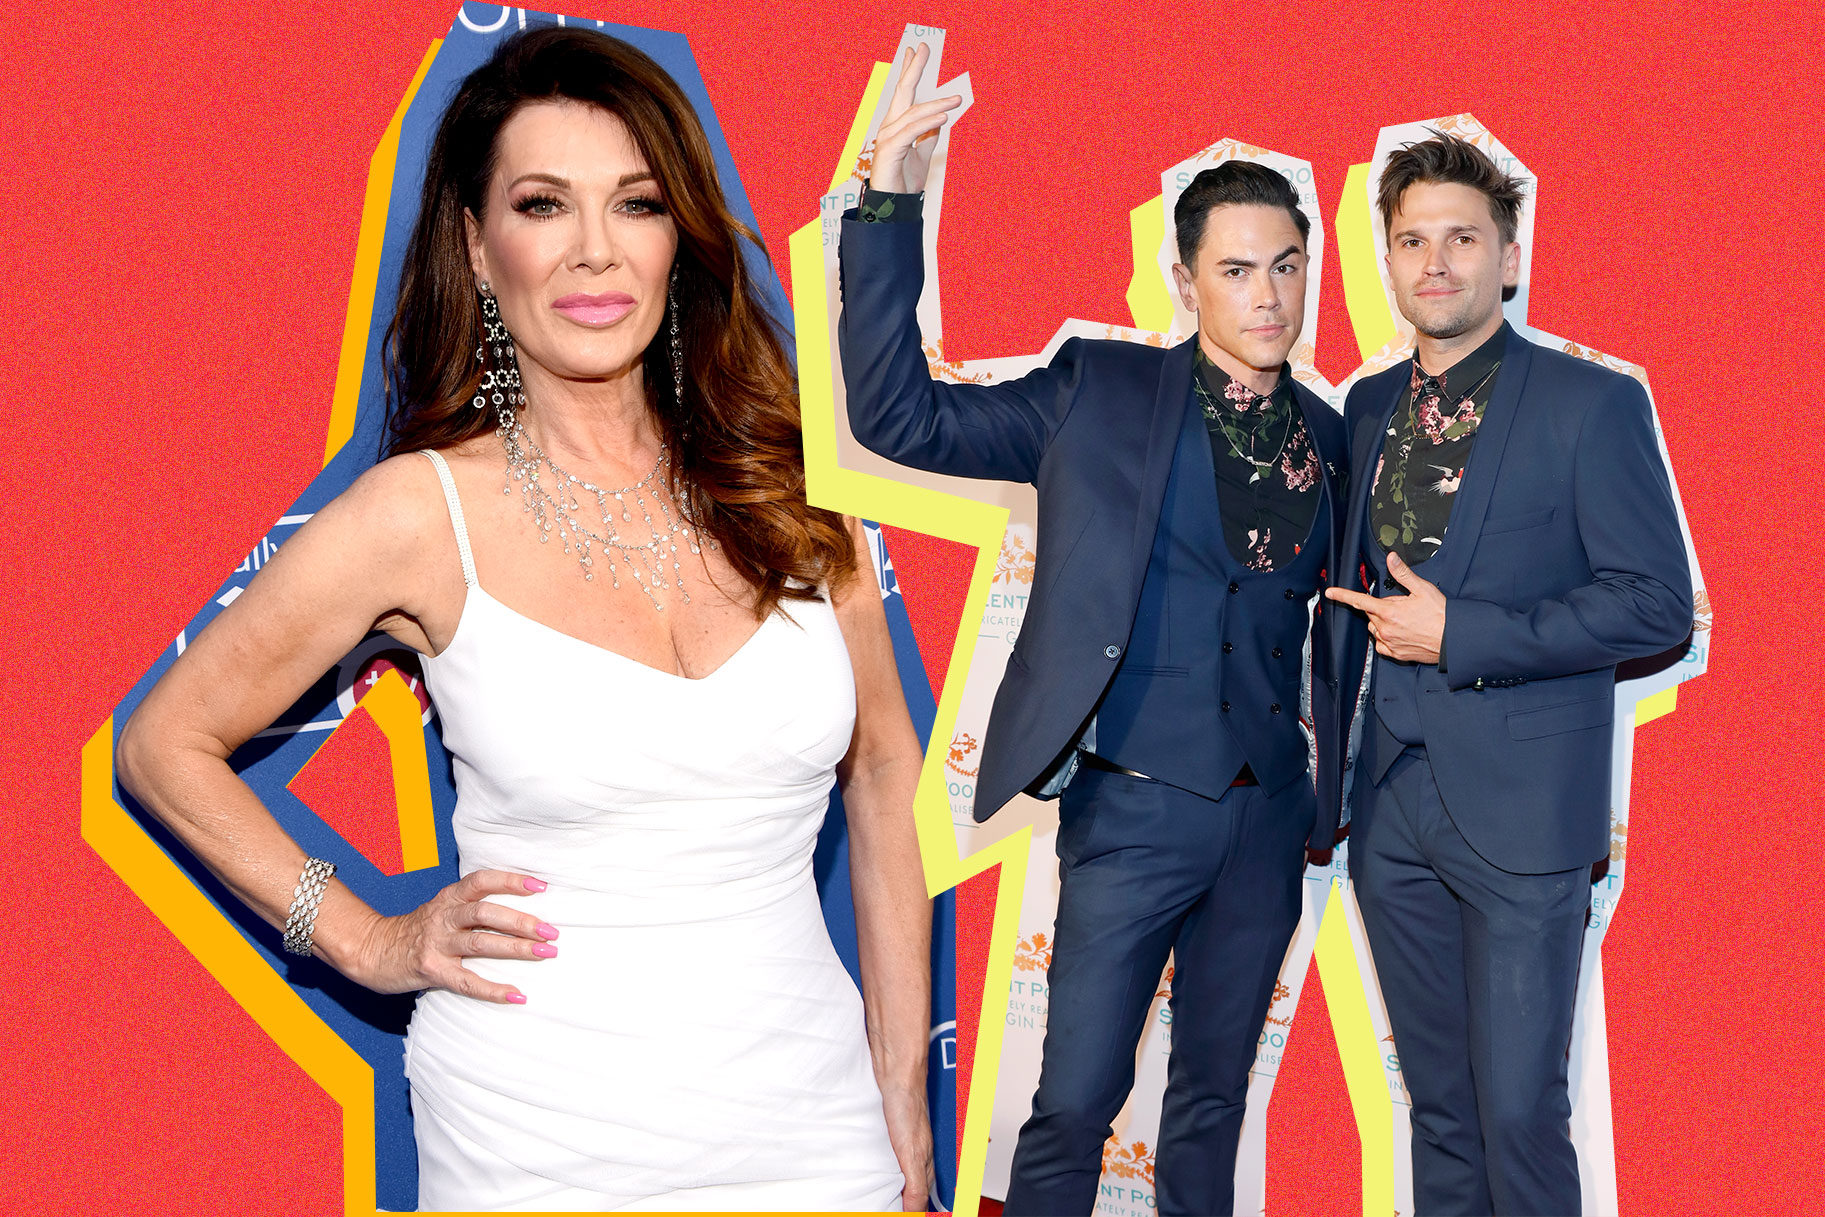 Lisa Vanderpump, Tom Schwartz, Tom Sandoval